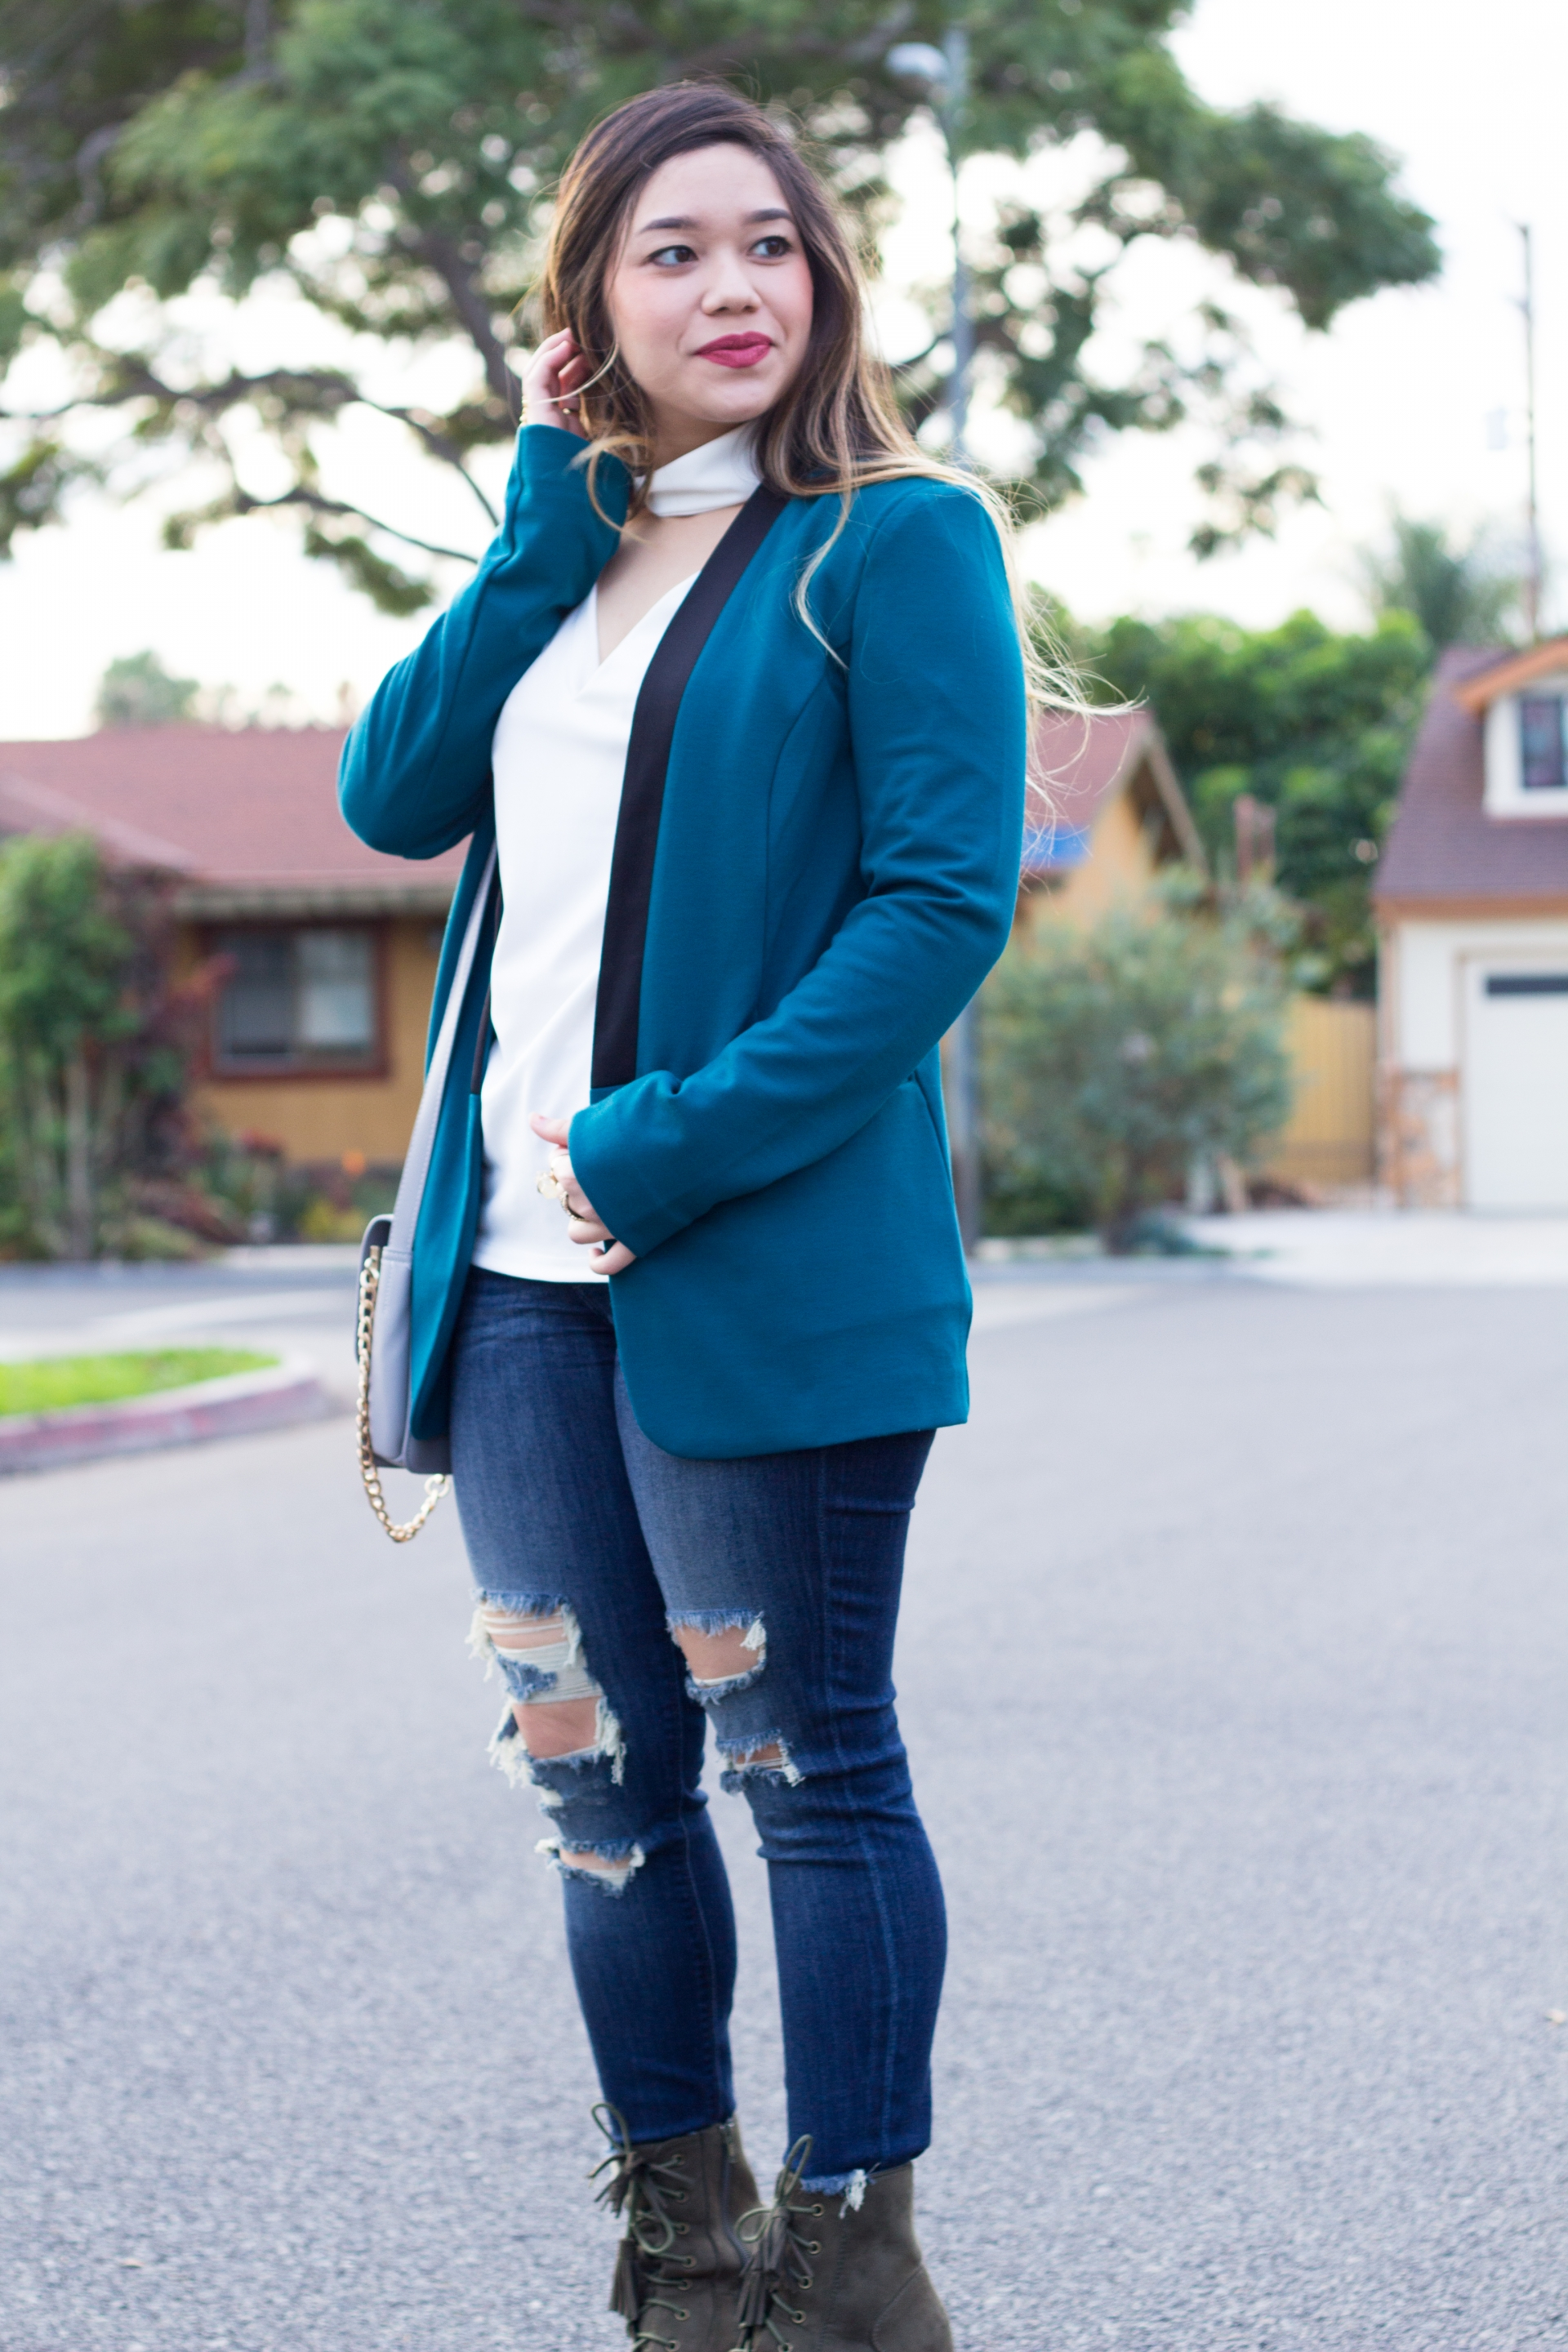 Teal Colorblock Blazer